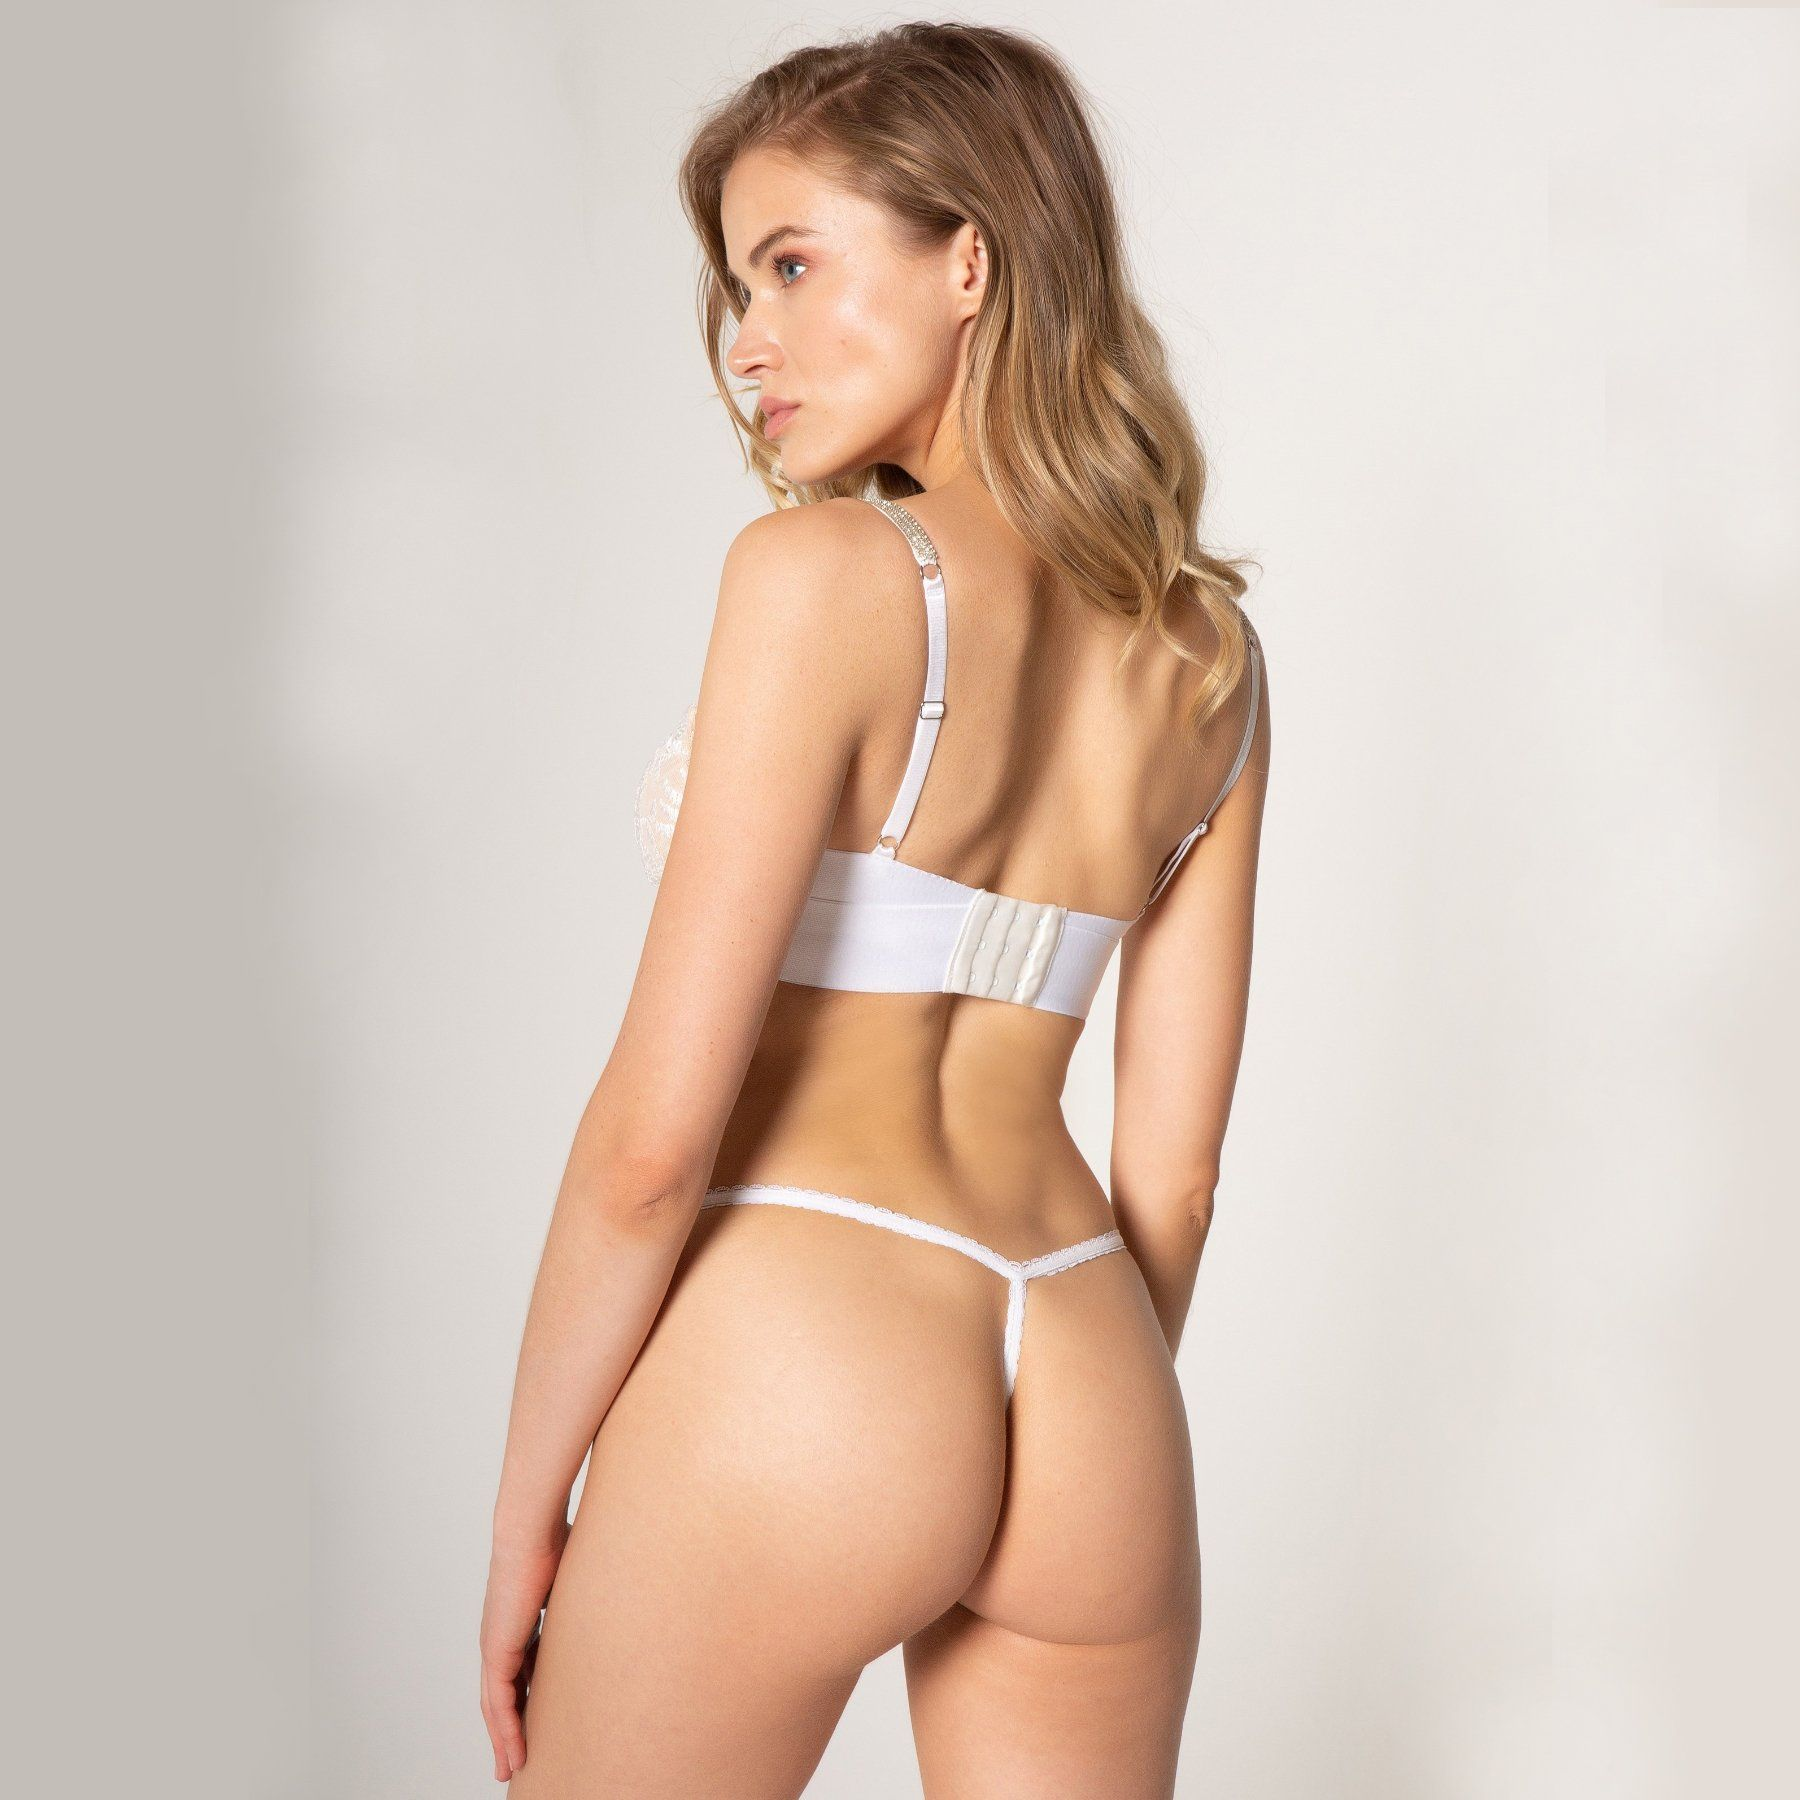 rear view woman wearing white lace bra and thong